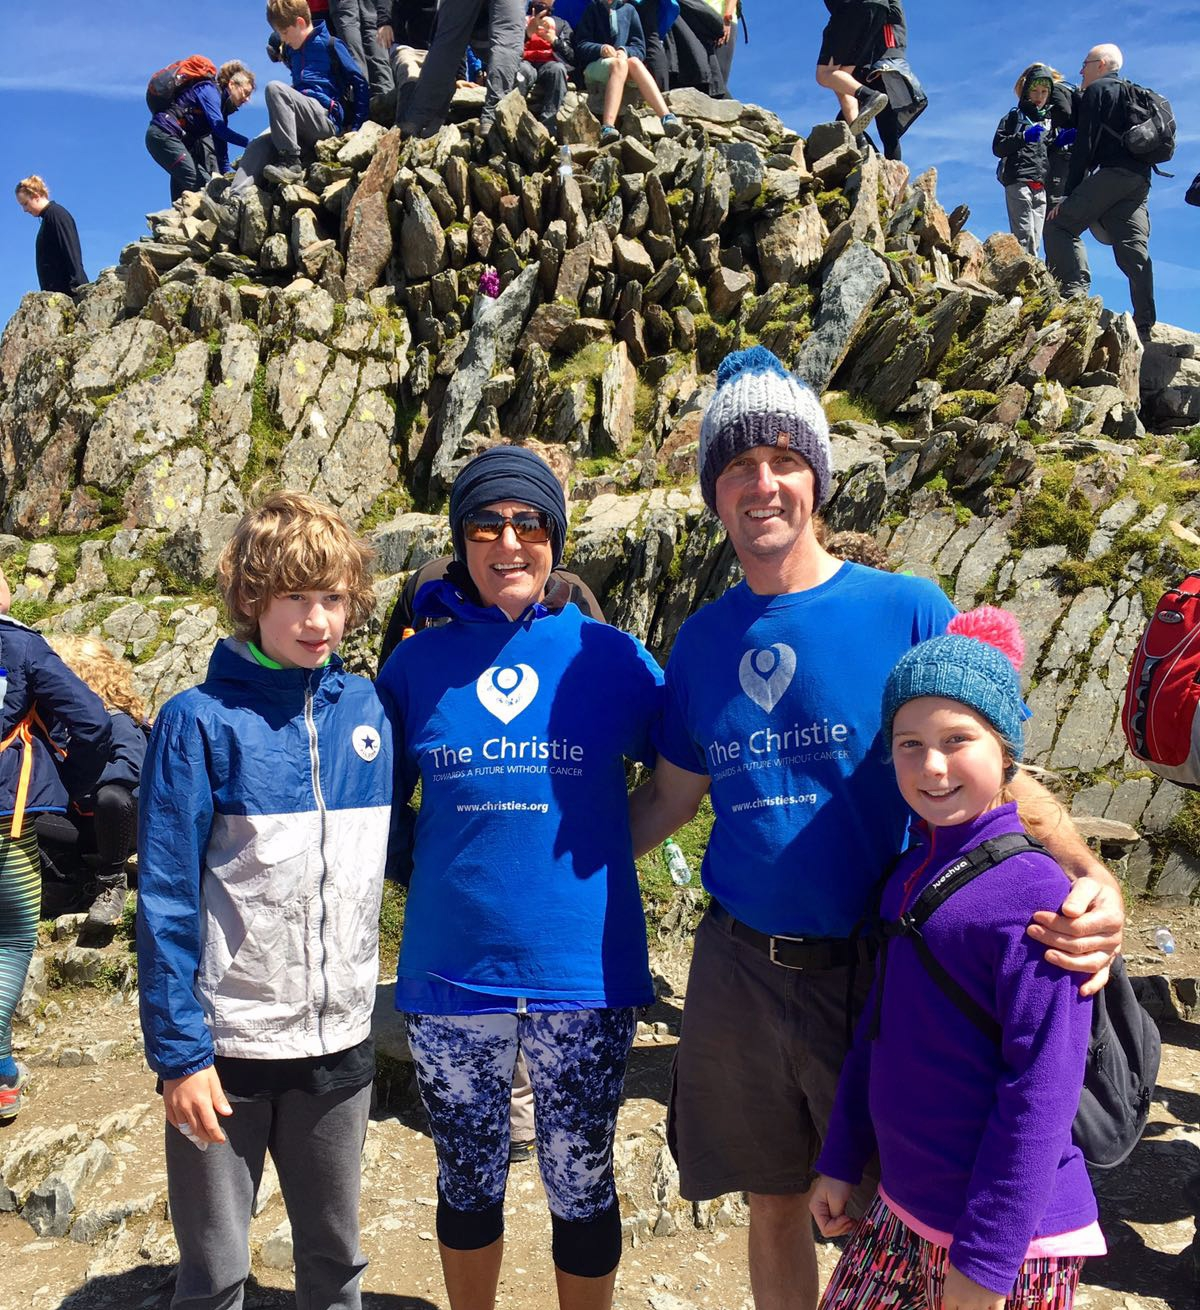 Happy family guided by UProjects to complete their Mount Snowdon challenge